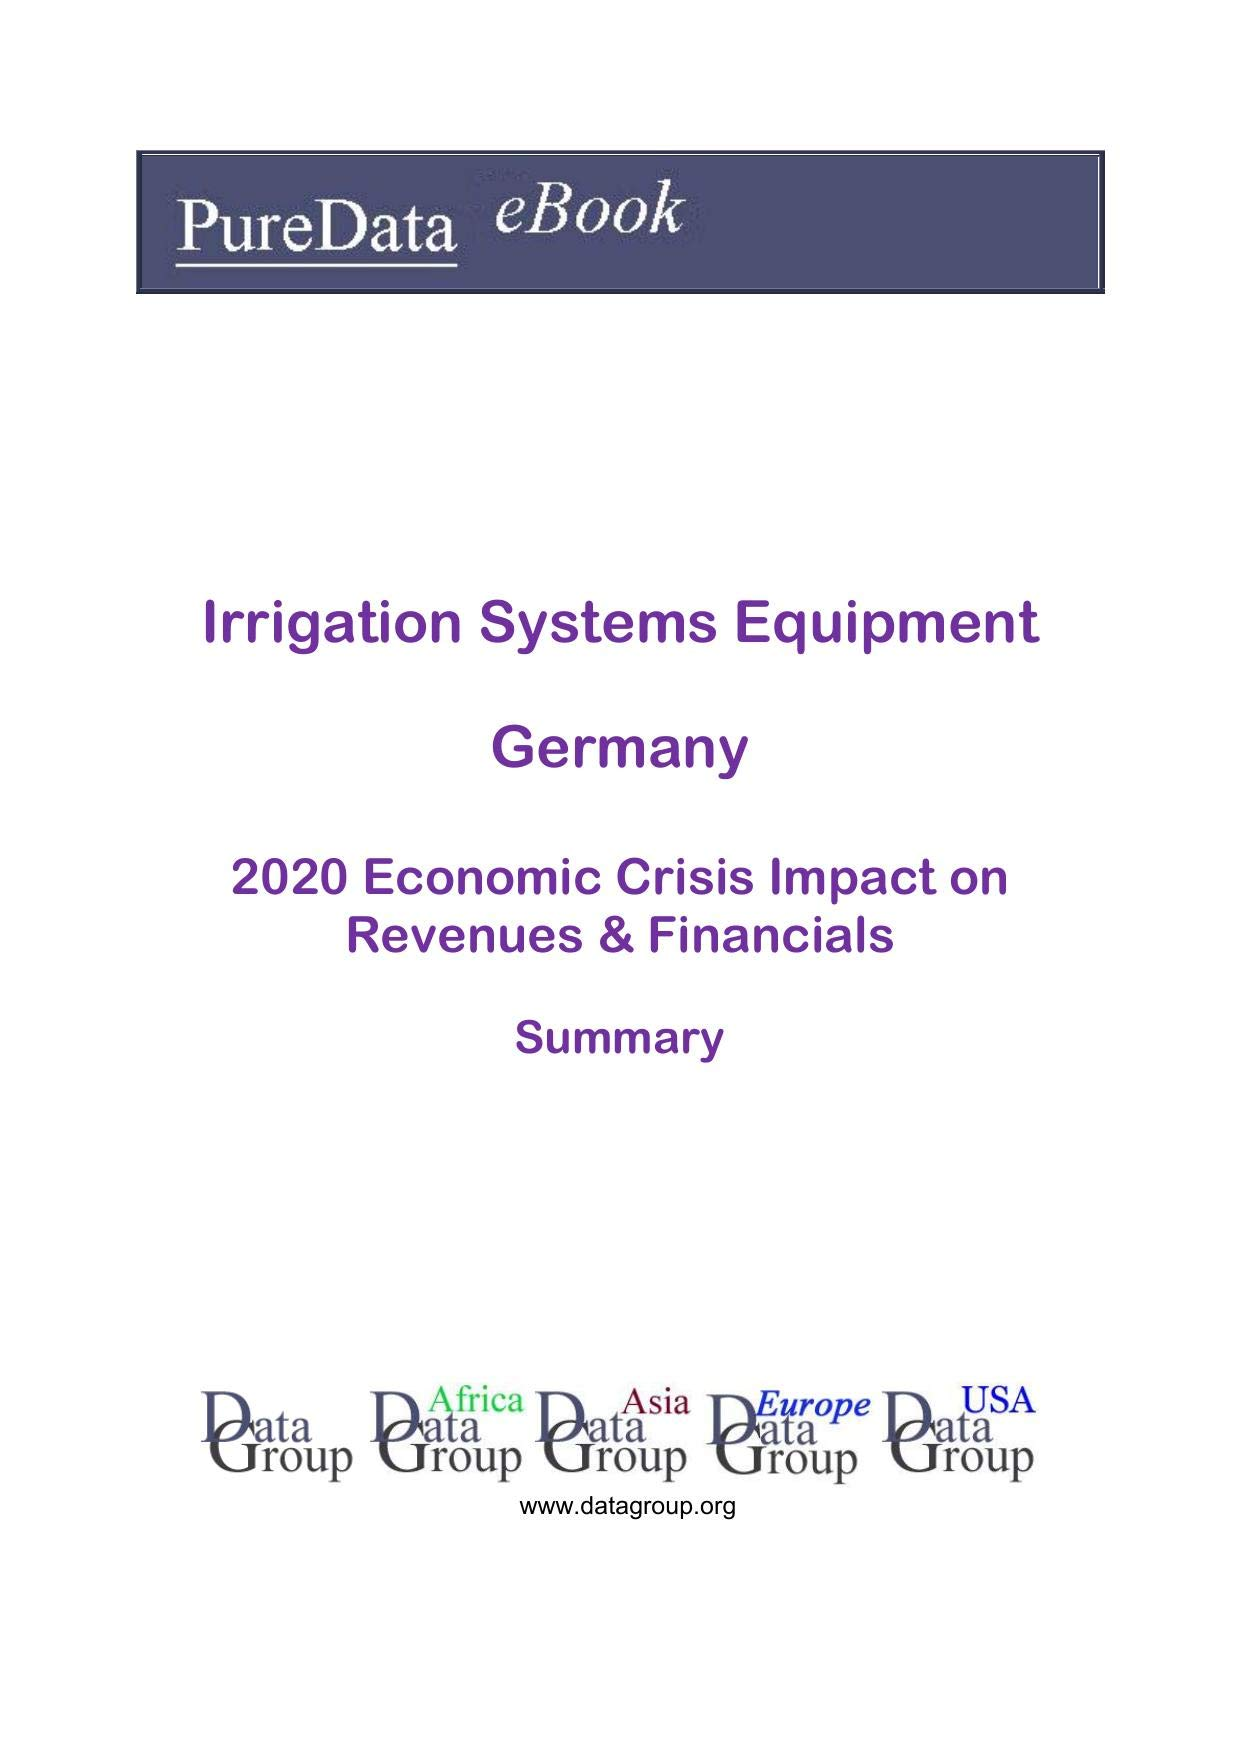 Irrigation Systems Equipment Germany Summary: 2020 Economic Crisis Impact on Revenues & Financials